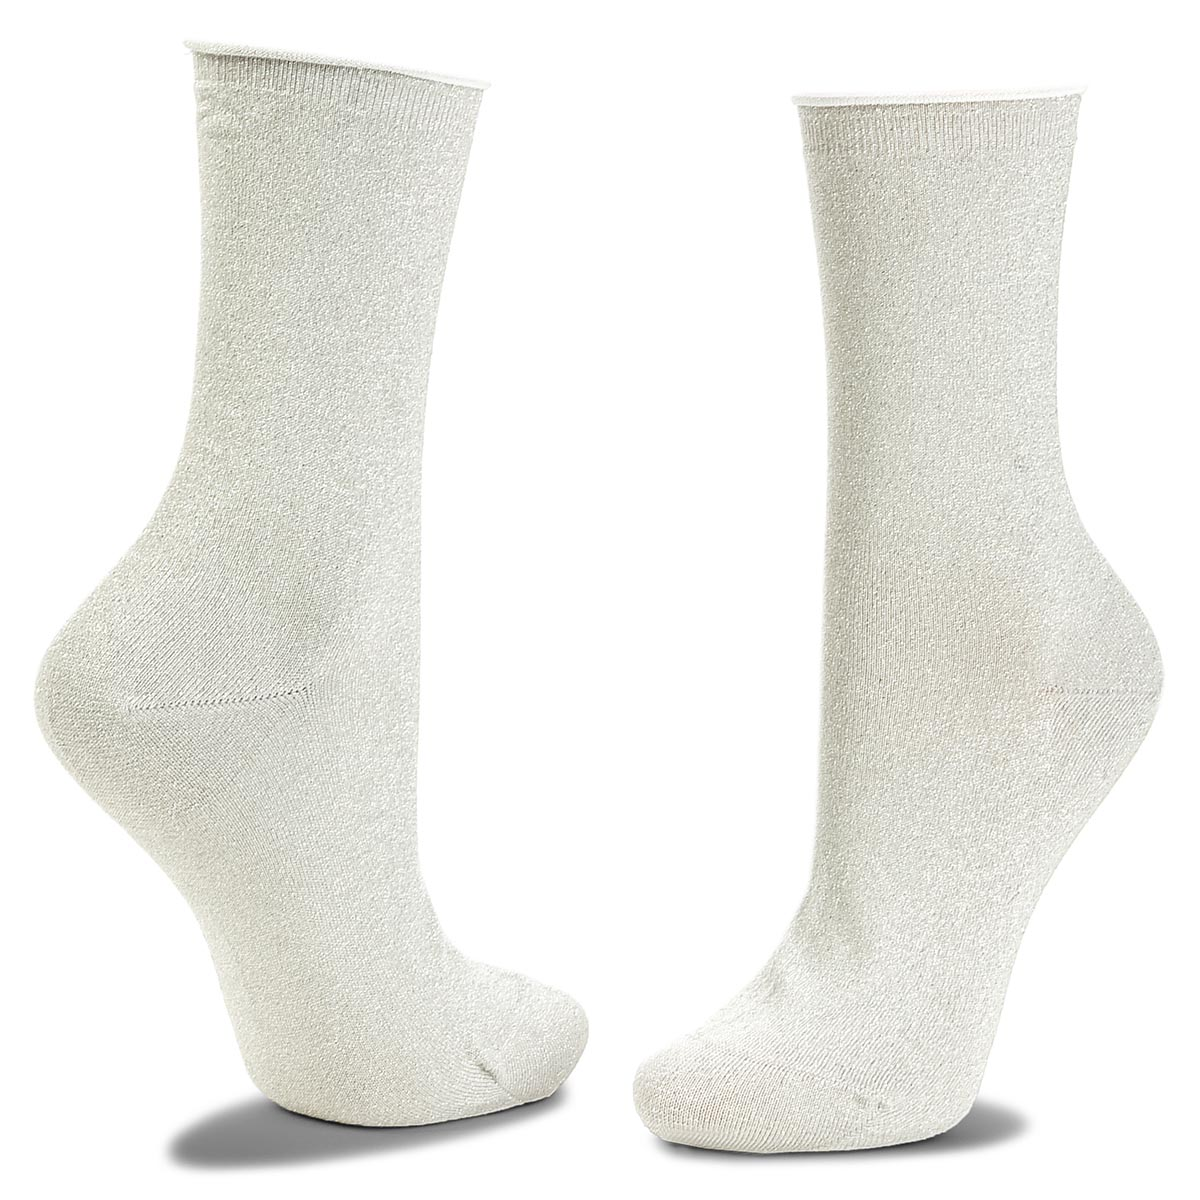 Skarpety Wysokie Damskie JOOP! - Lurex Sock Ier 760.059 Light Grey Melange 2400M